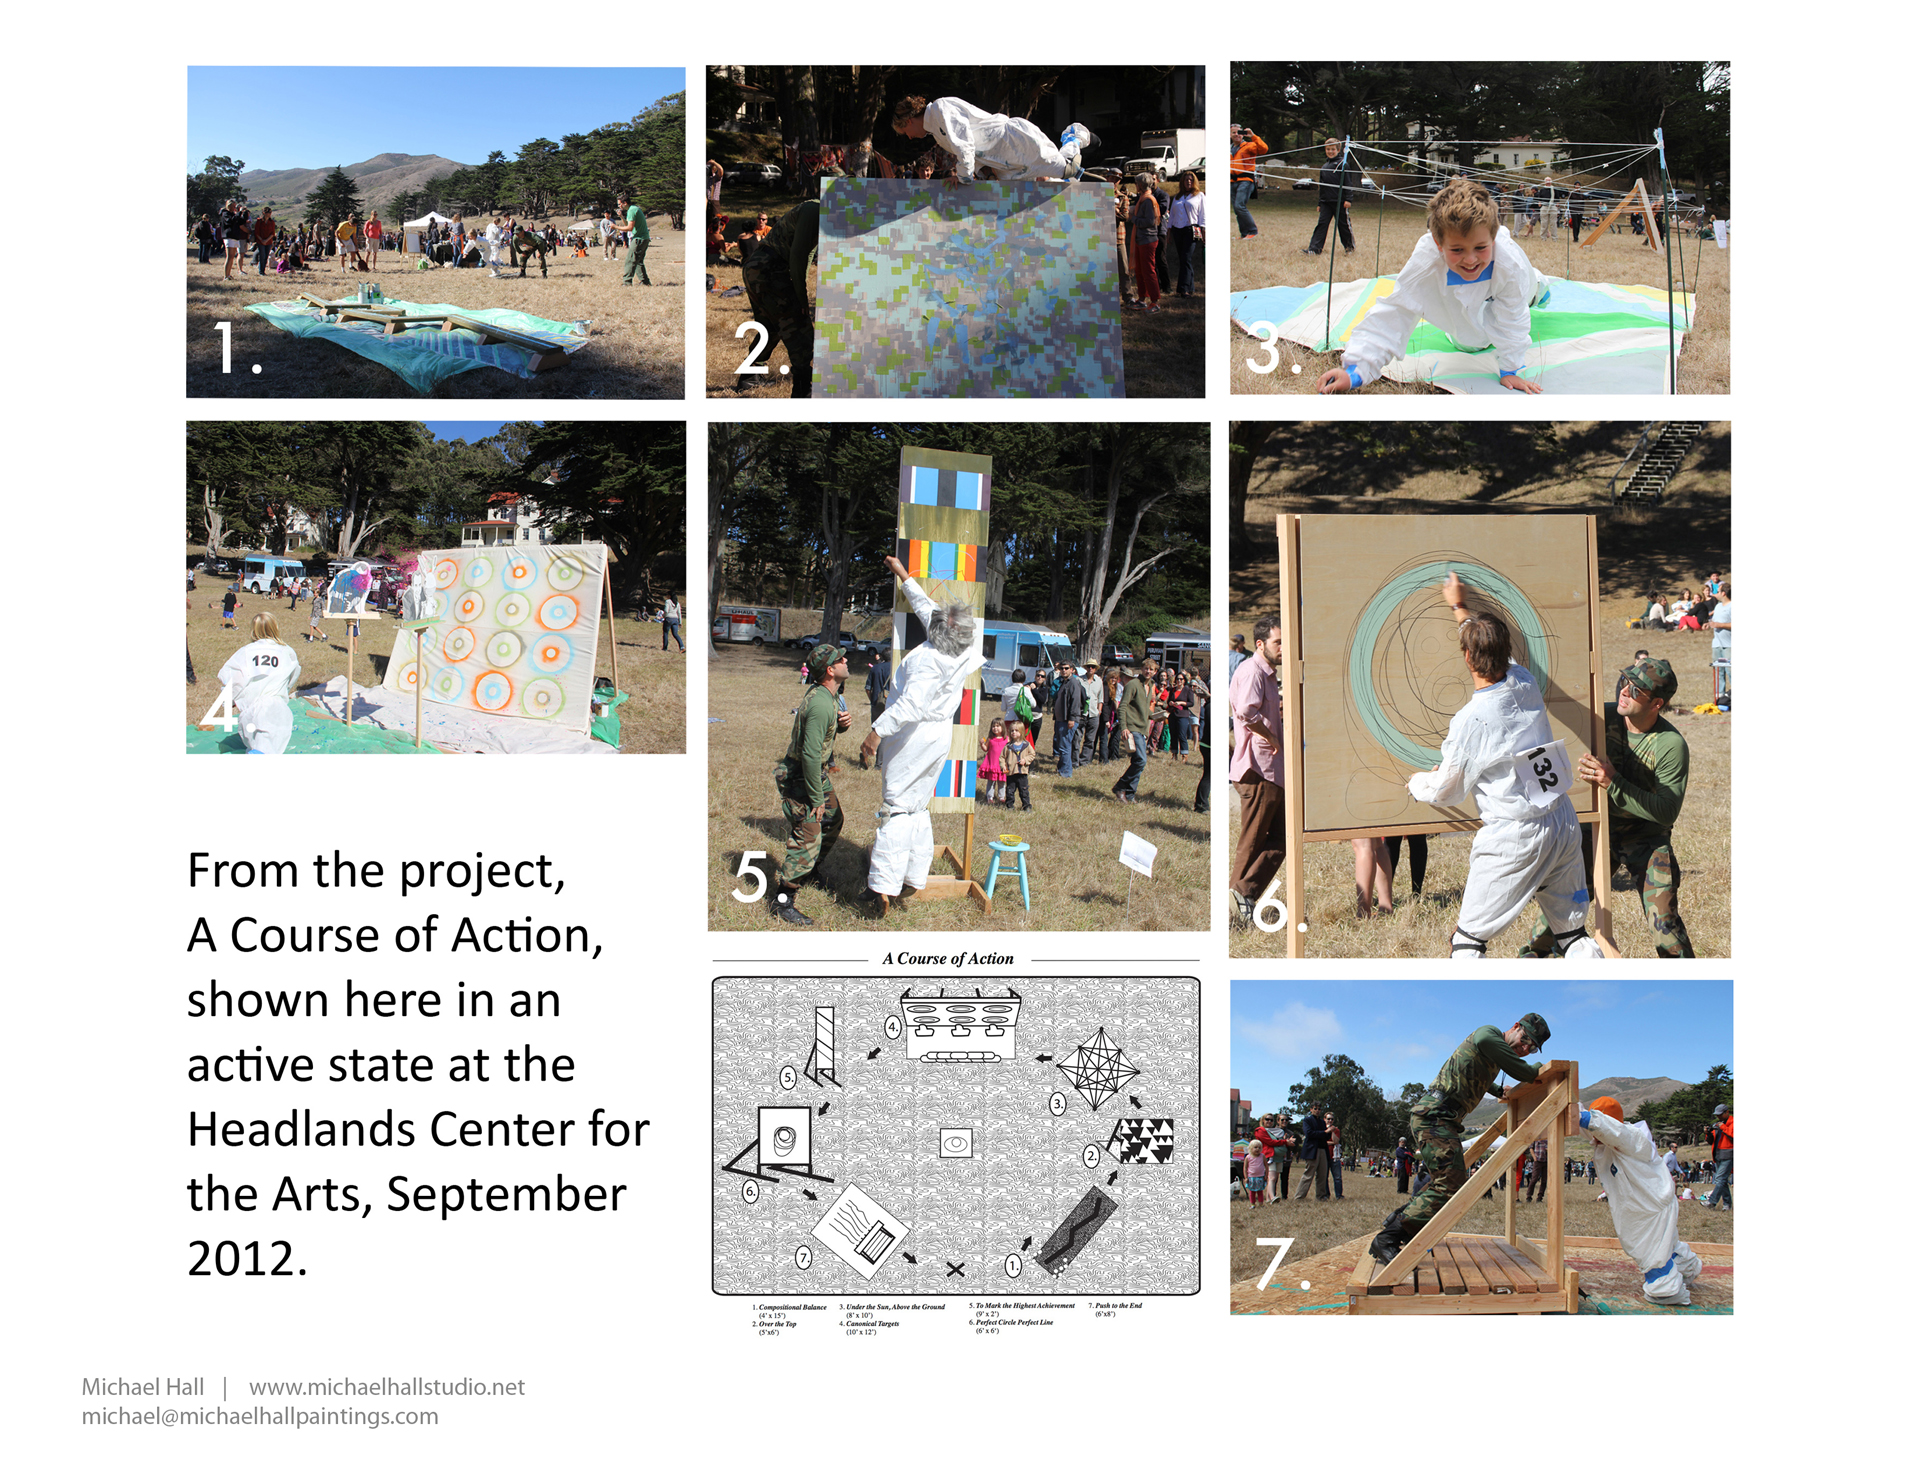 6. Course of Action.jpg